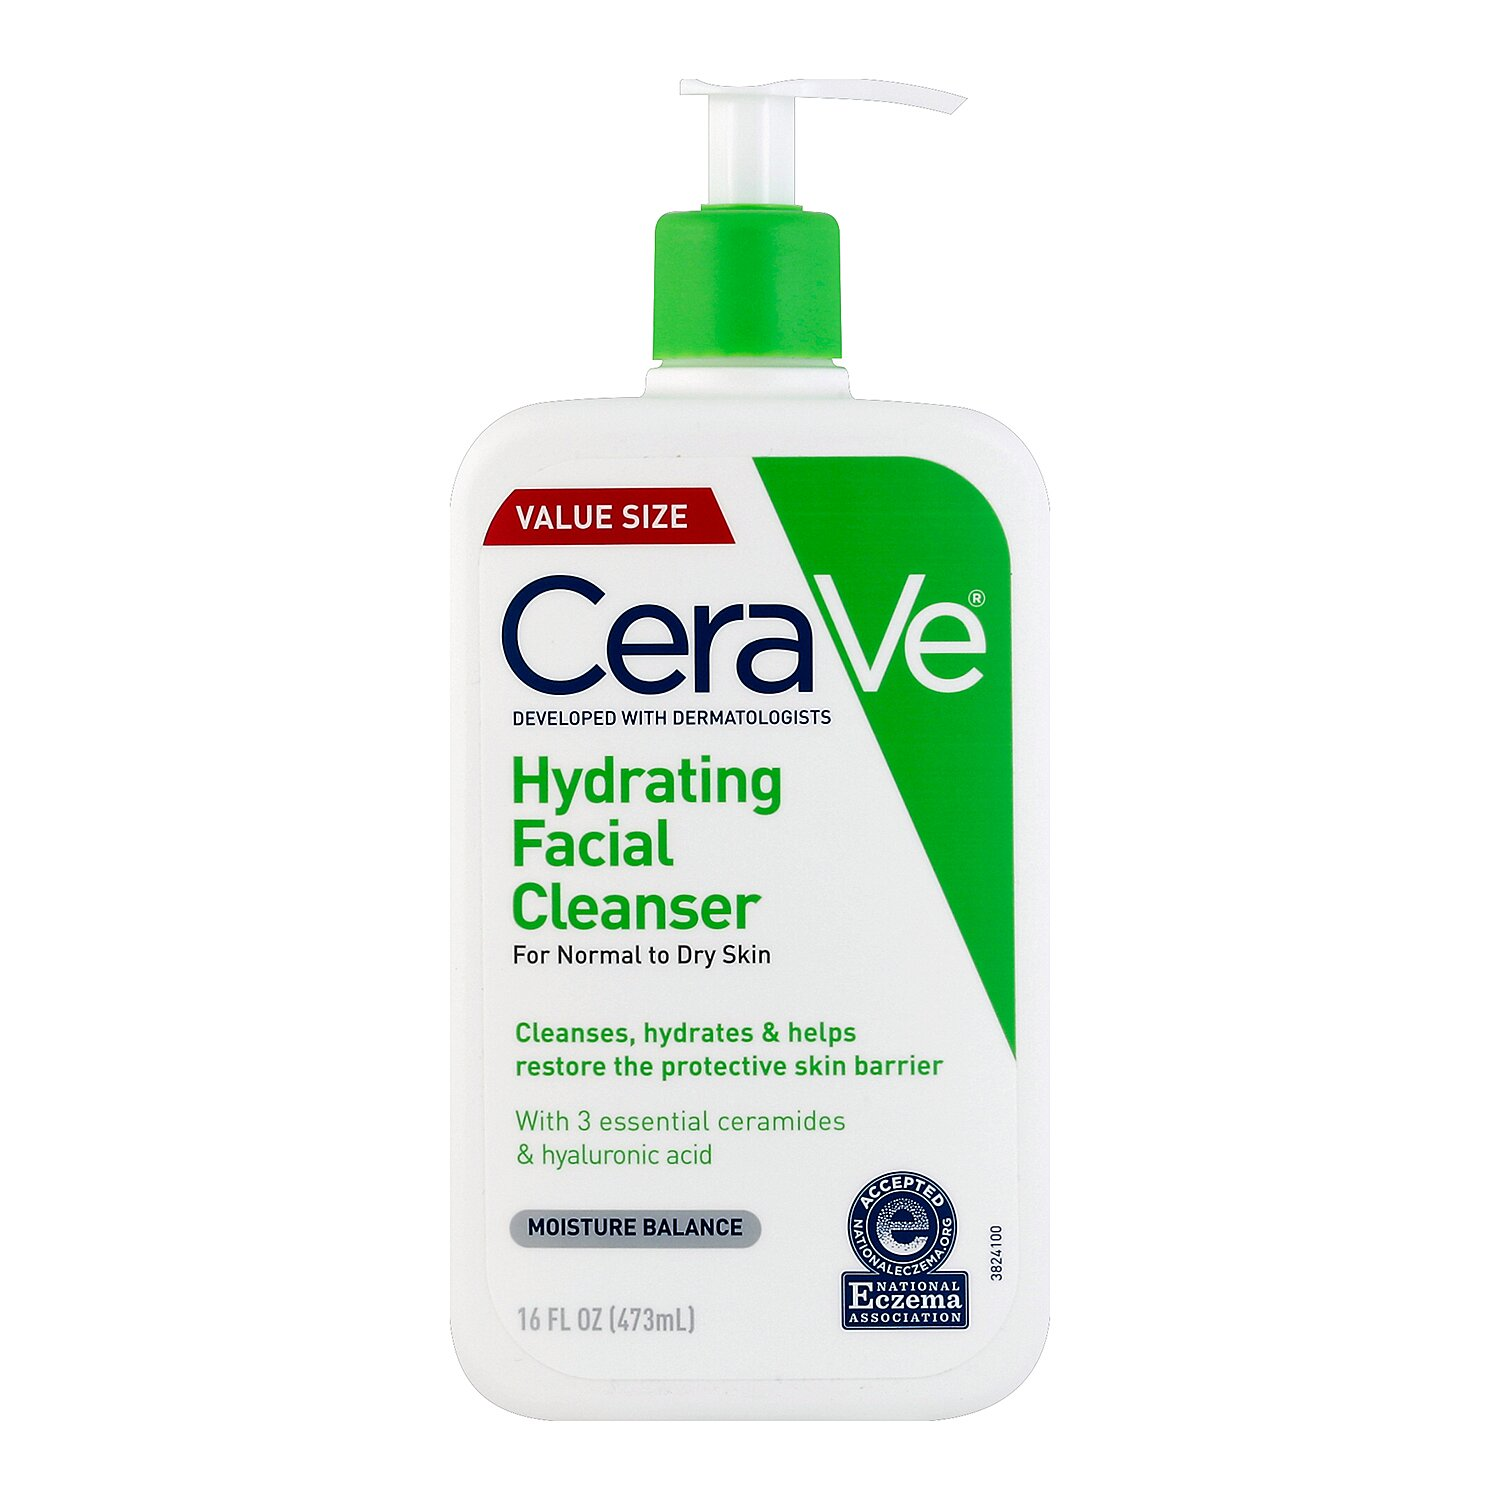 Cerave S Anti Aging Face Wash Keeps Skin Hydrated All Winter